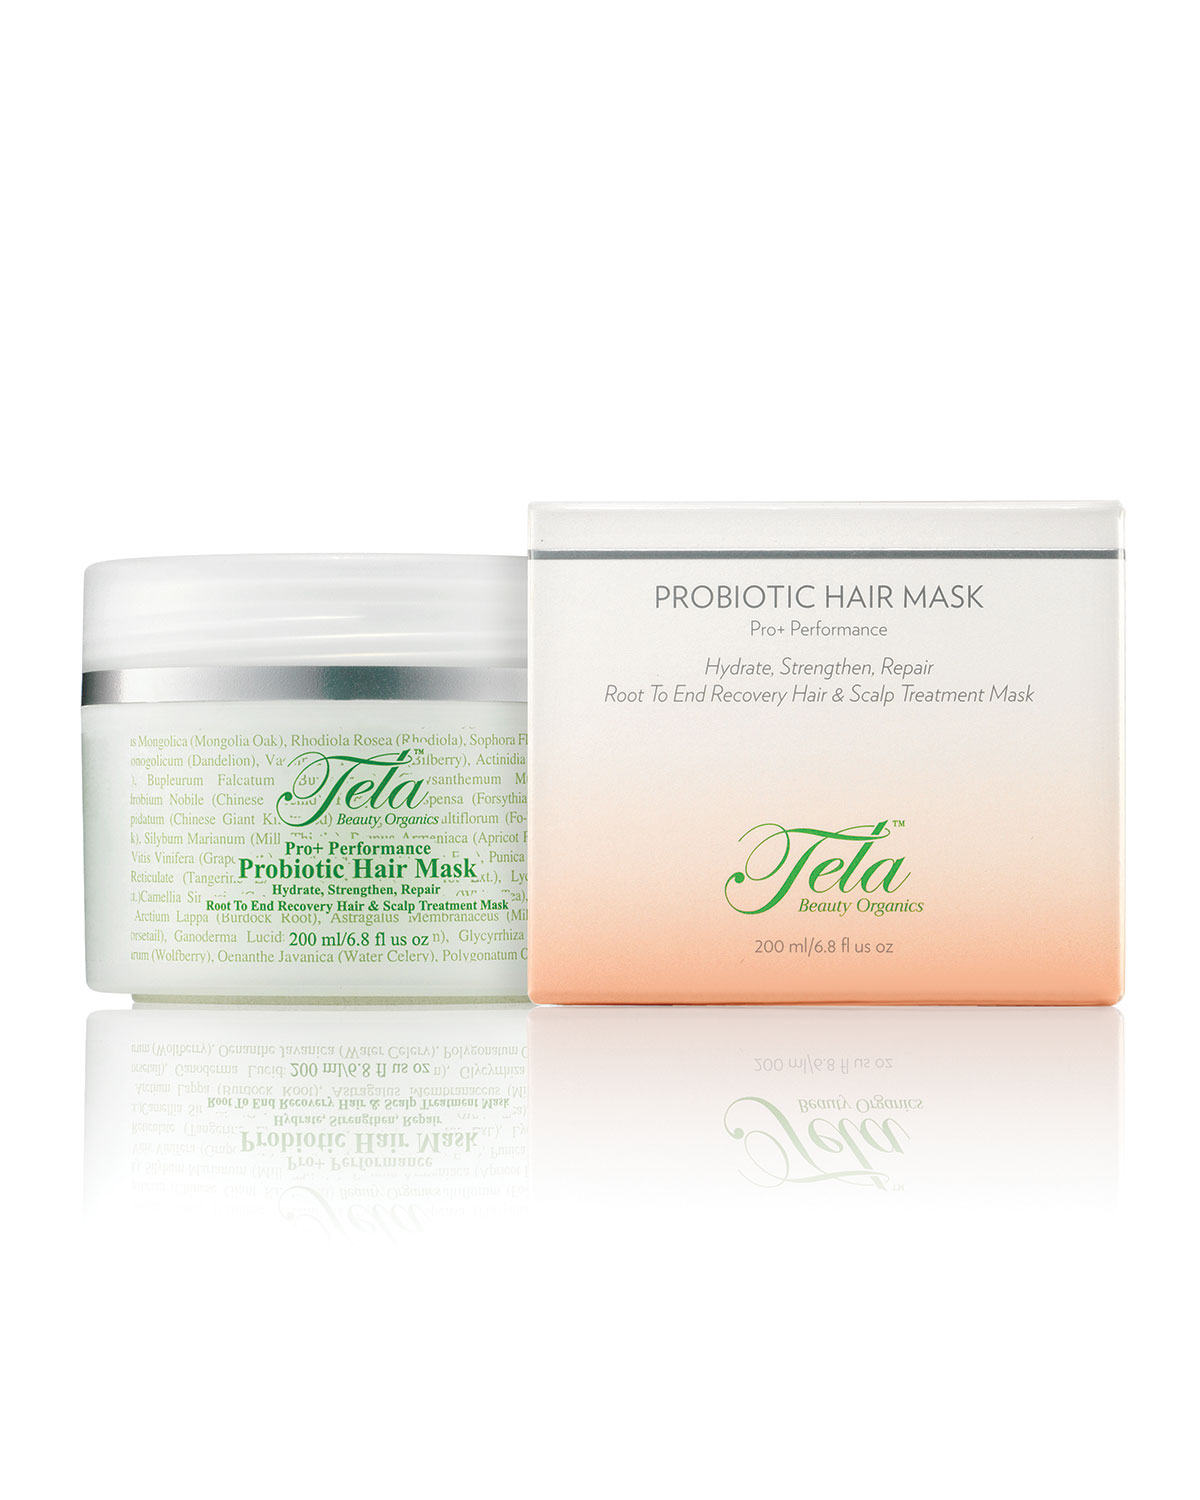 Tela Beauty Organics Probiotic Hair mL Mask, 6.8 oz./ 201 mL Hair a141f7